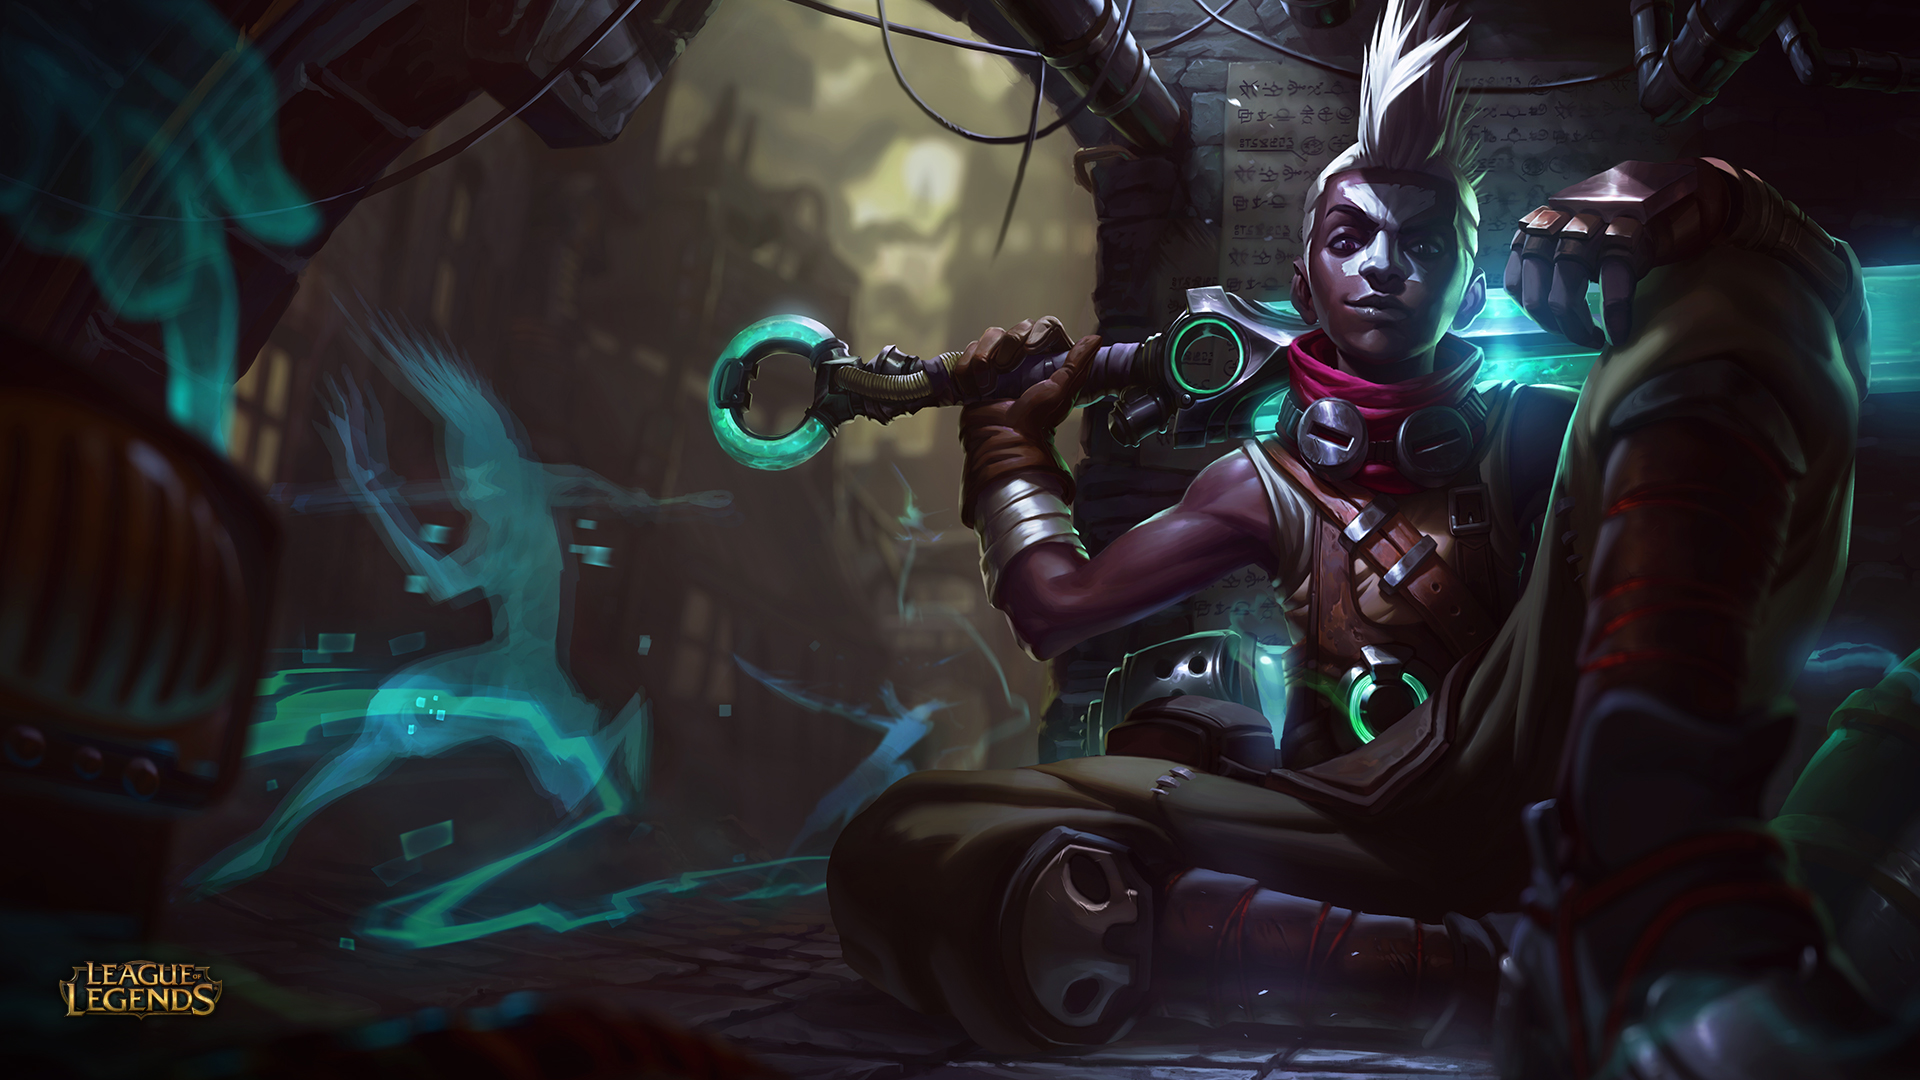 Ekko Wallpaper HD 1920x1080 League Of